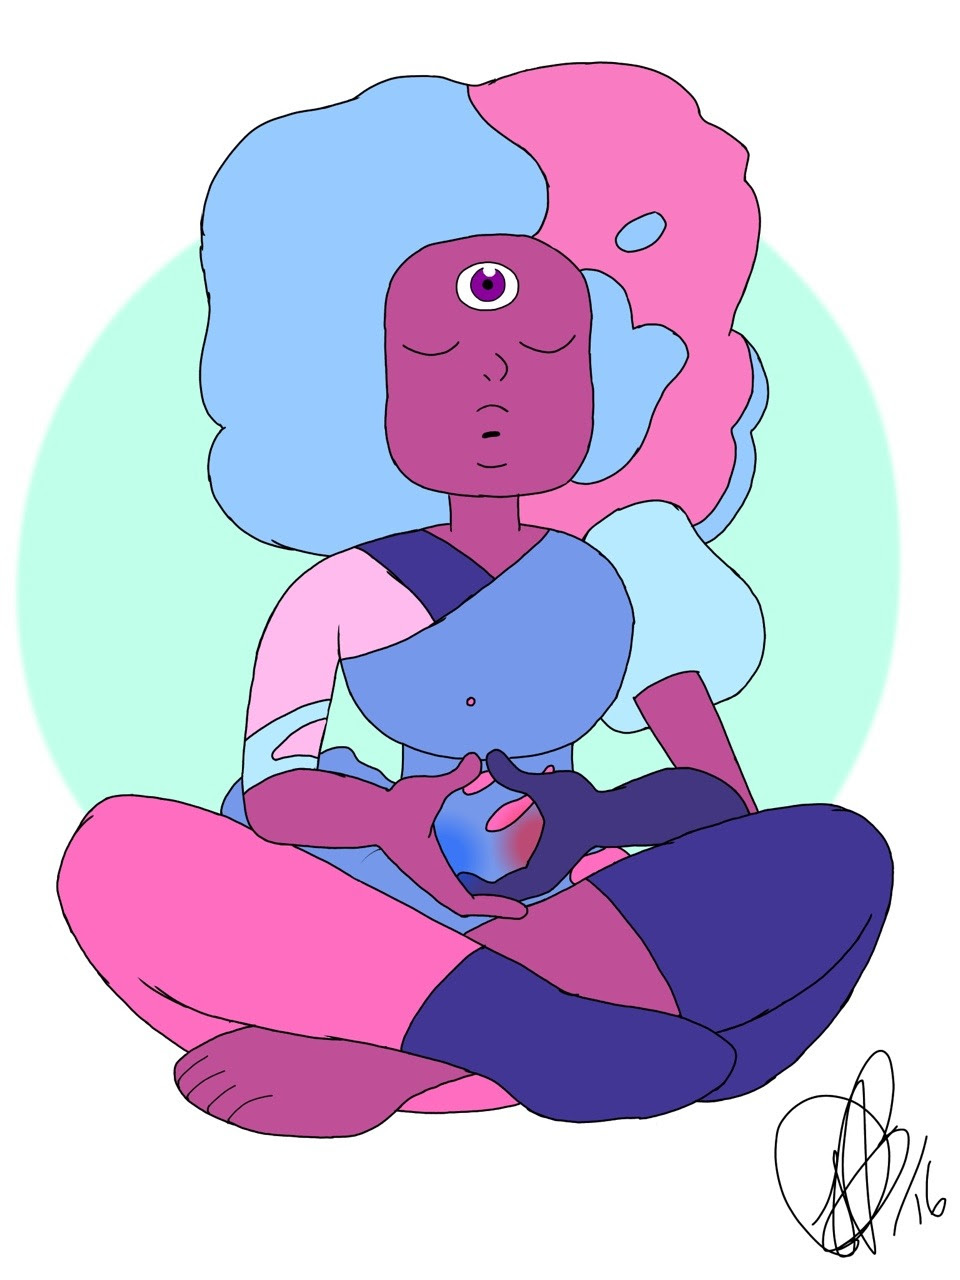 Garnet learning to know herself